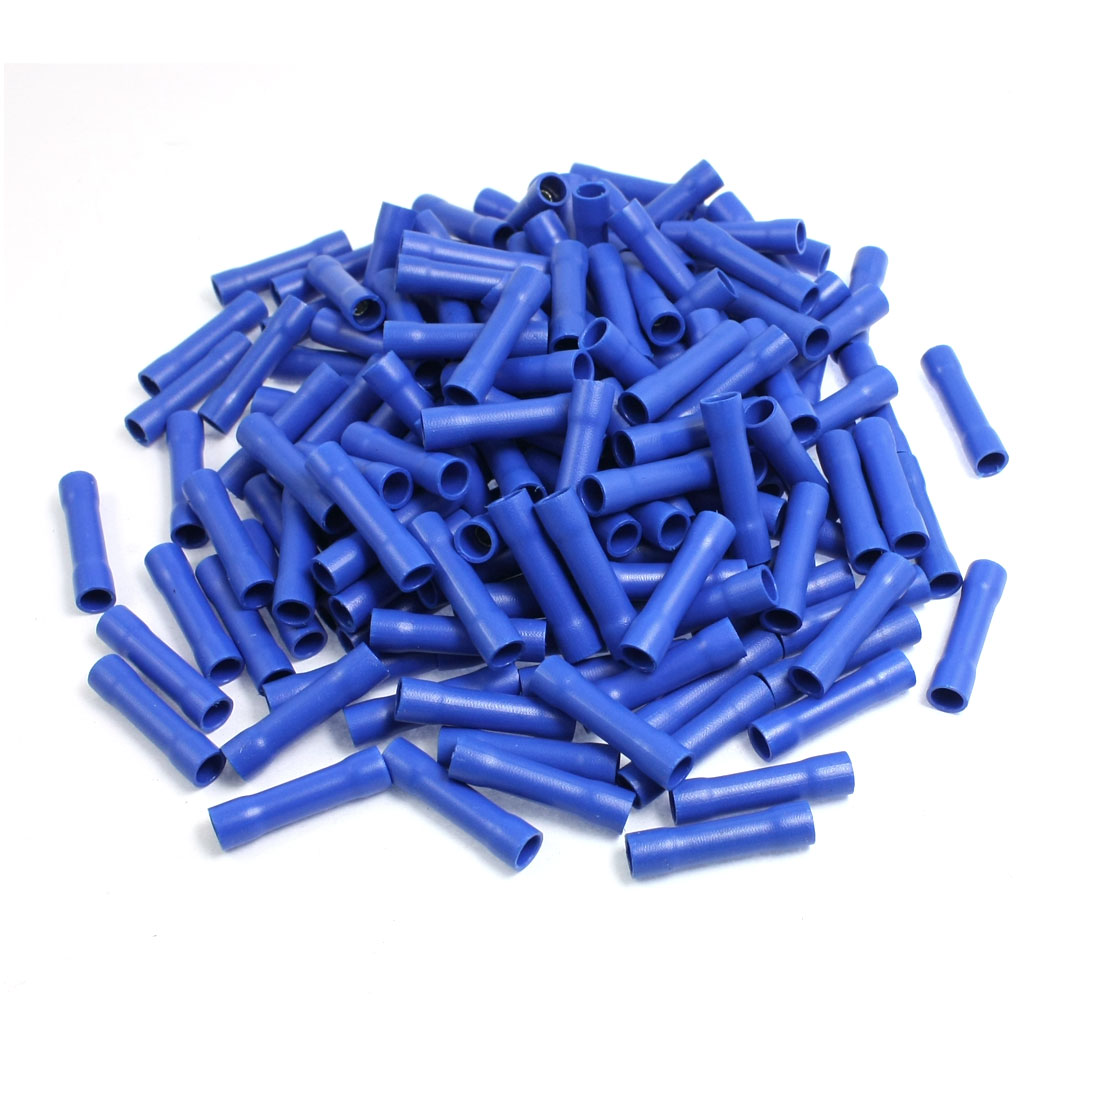 FRD2-195-Blue-PVC-Insulating-Female-Crimp-Cable-Terminals-Connectors-200pcs